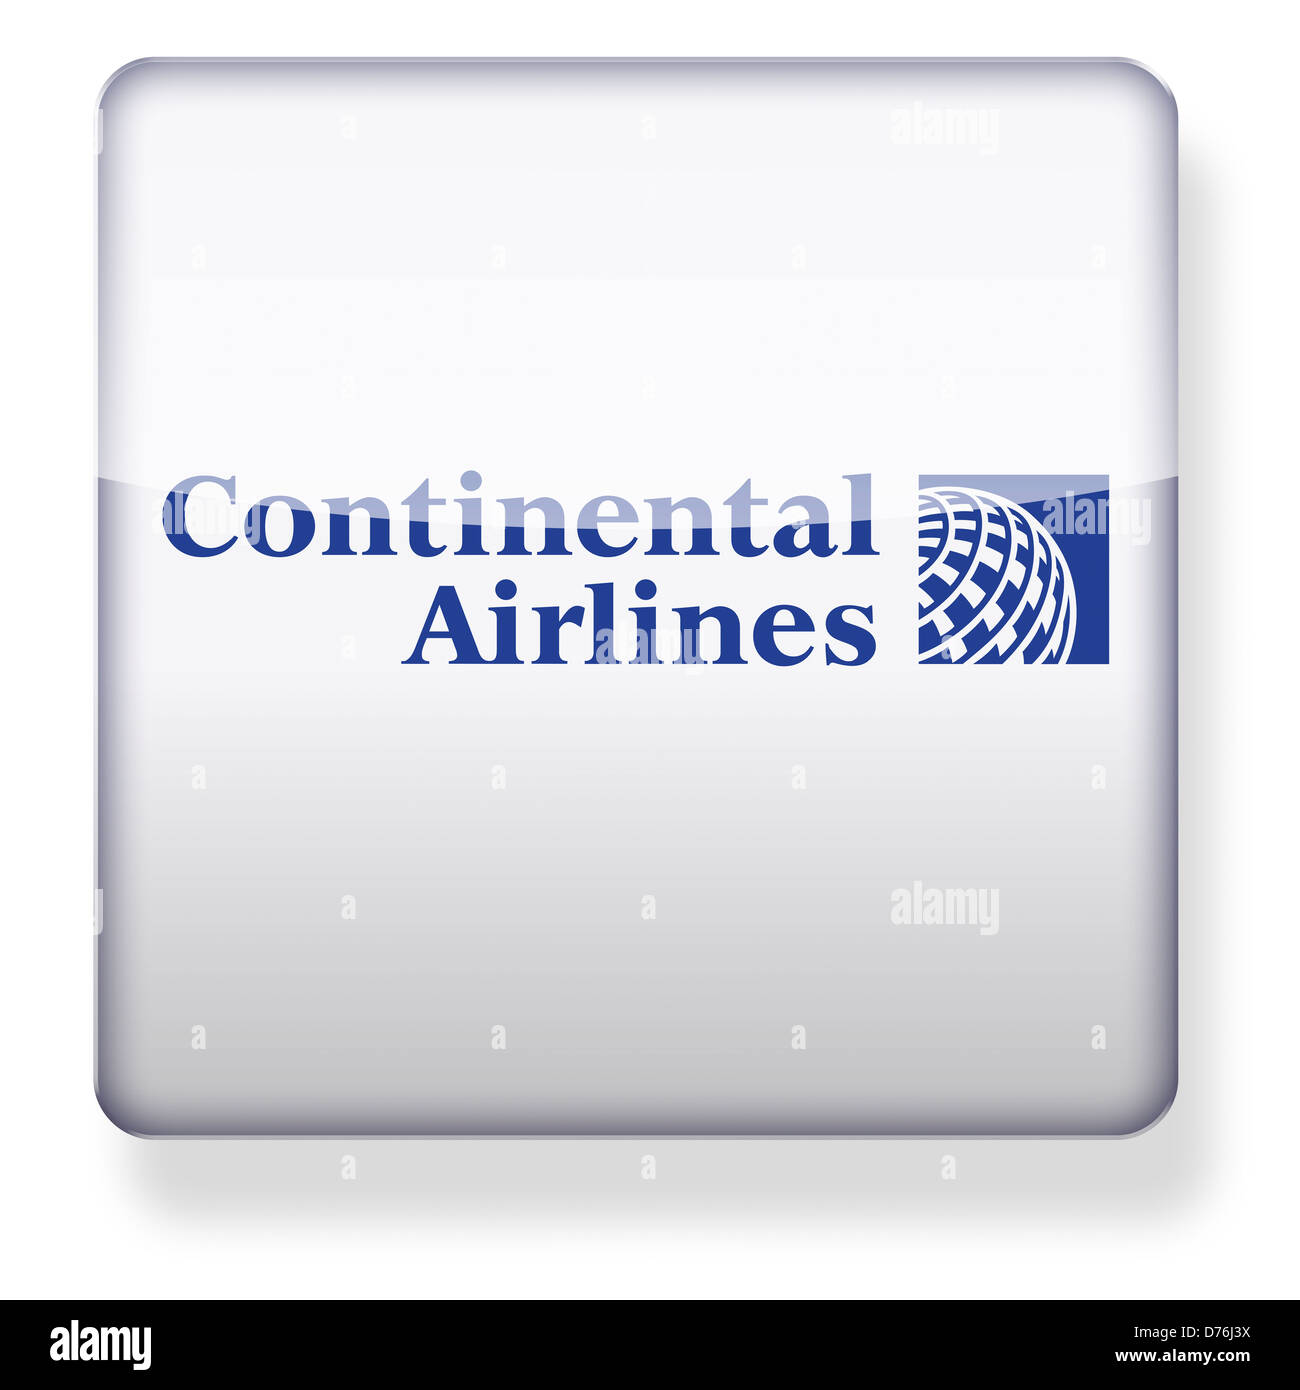 Continental Airlines logo as an app icon. Clipping path included. - Stock Image